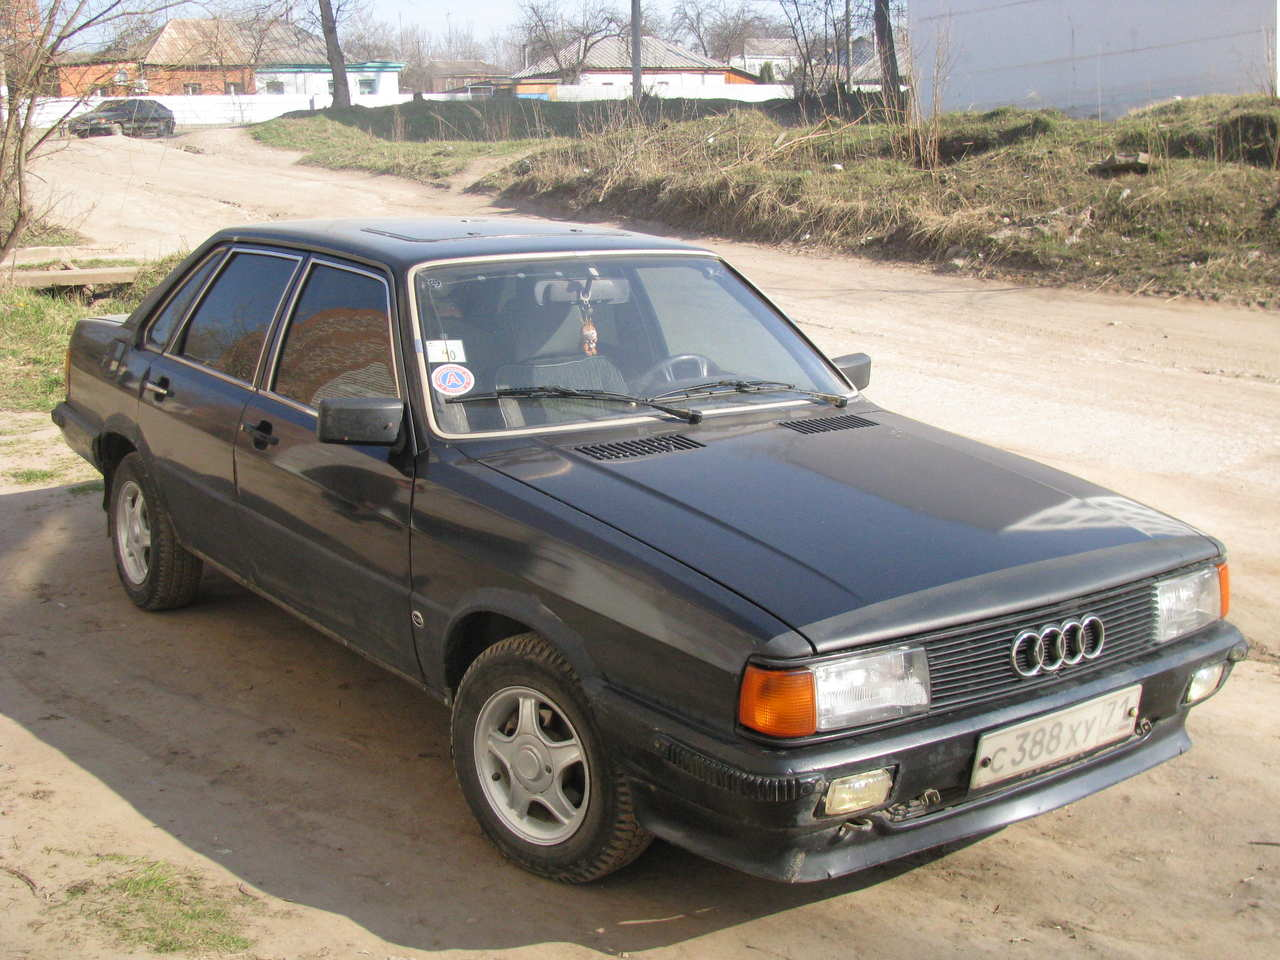 service manual 1985 audi quattro how to remove convertible top audi sport quattro s1 e2 quot. Black Bedroom Furniture Sets. Home Design Ideas